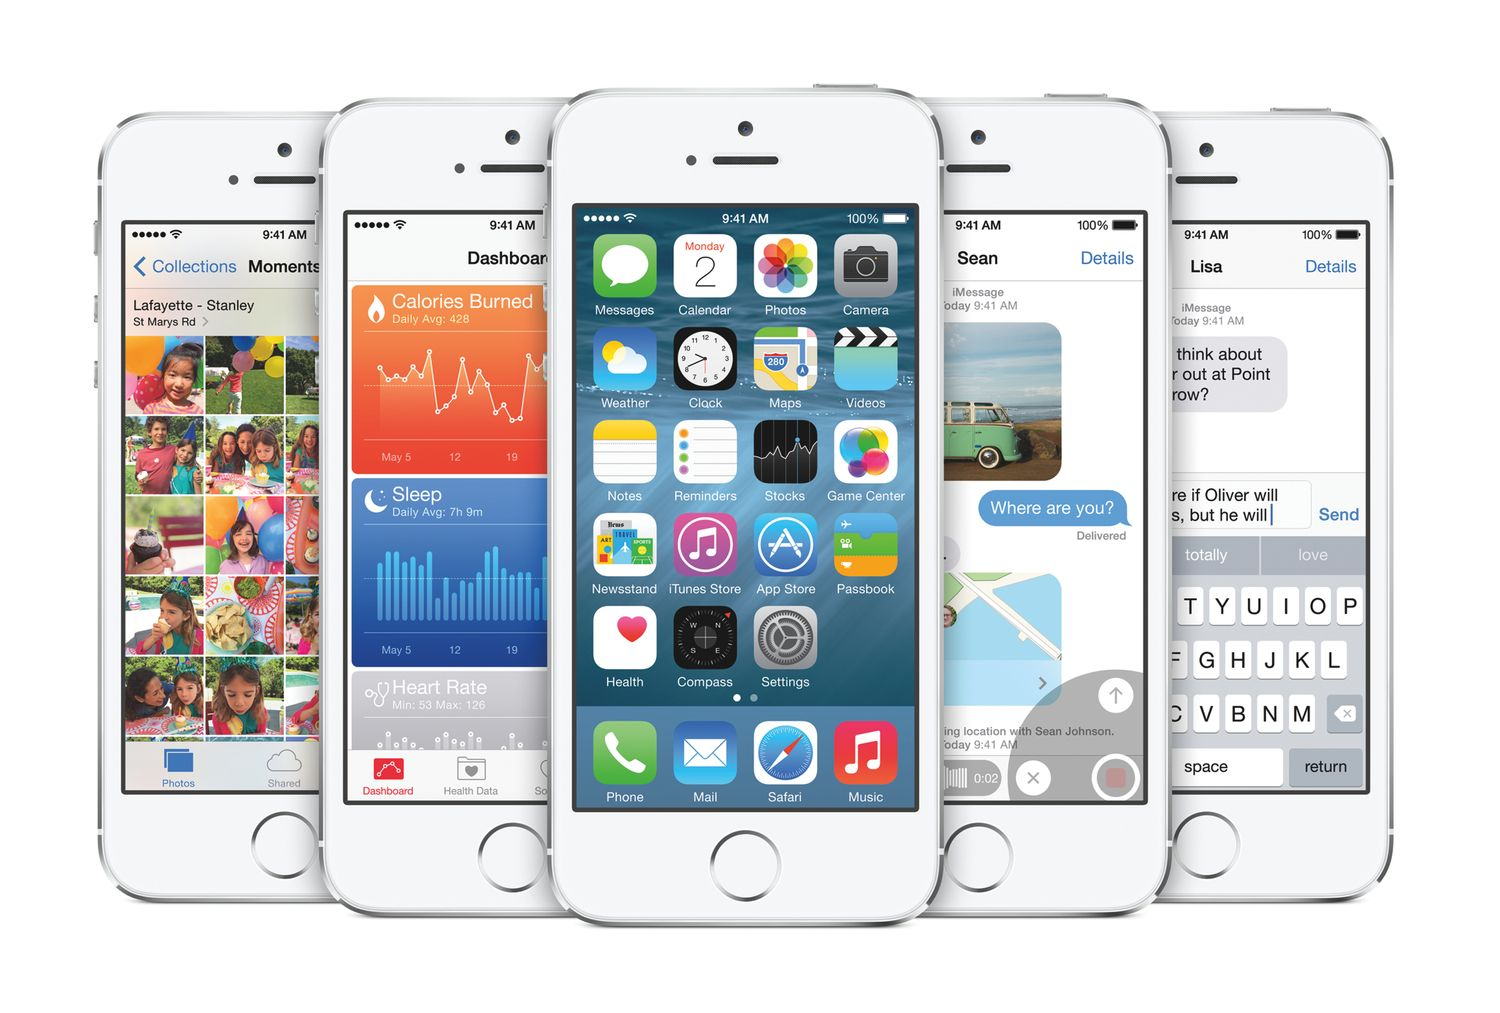 I 6 problemi di iOS 8 su iPhone e iPad